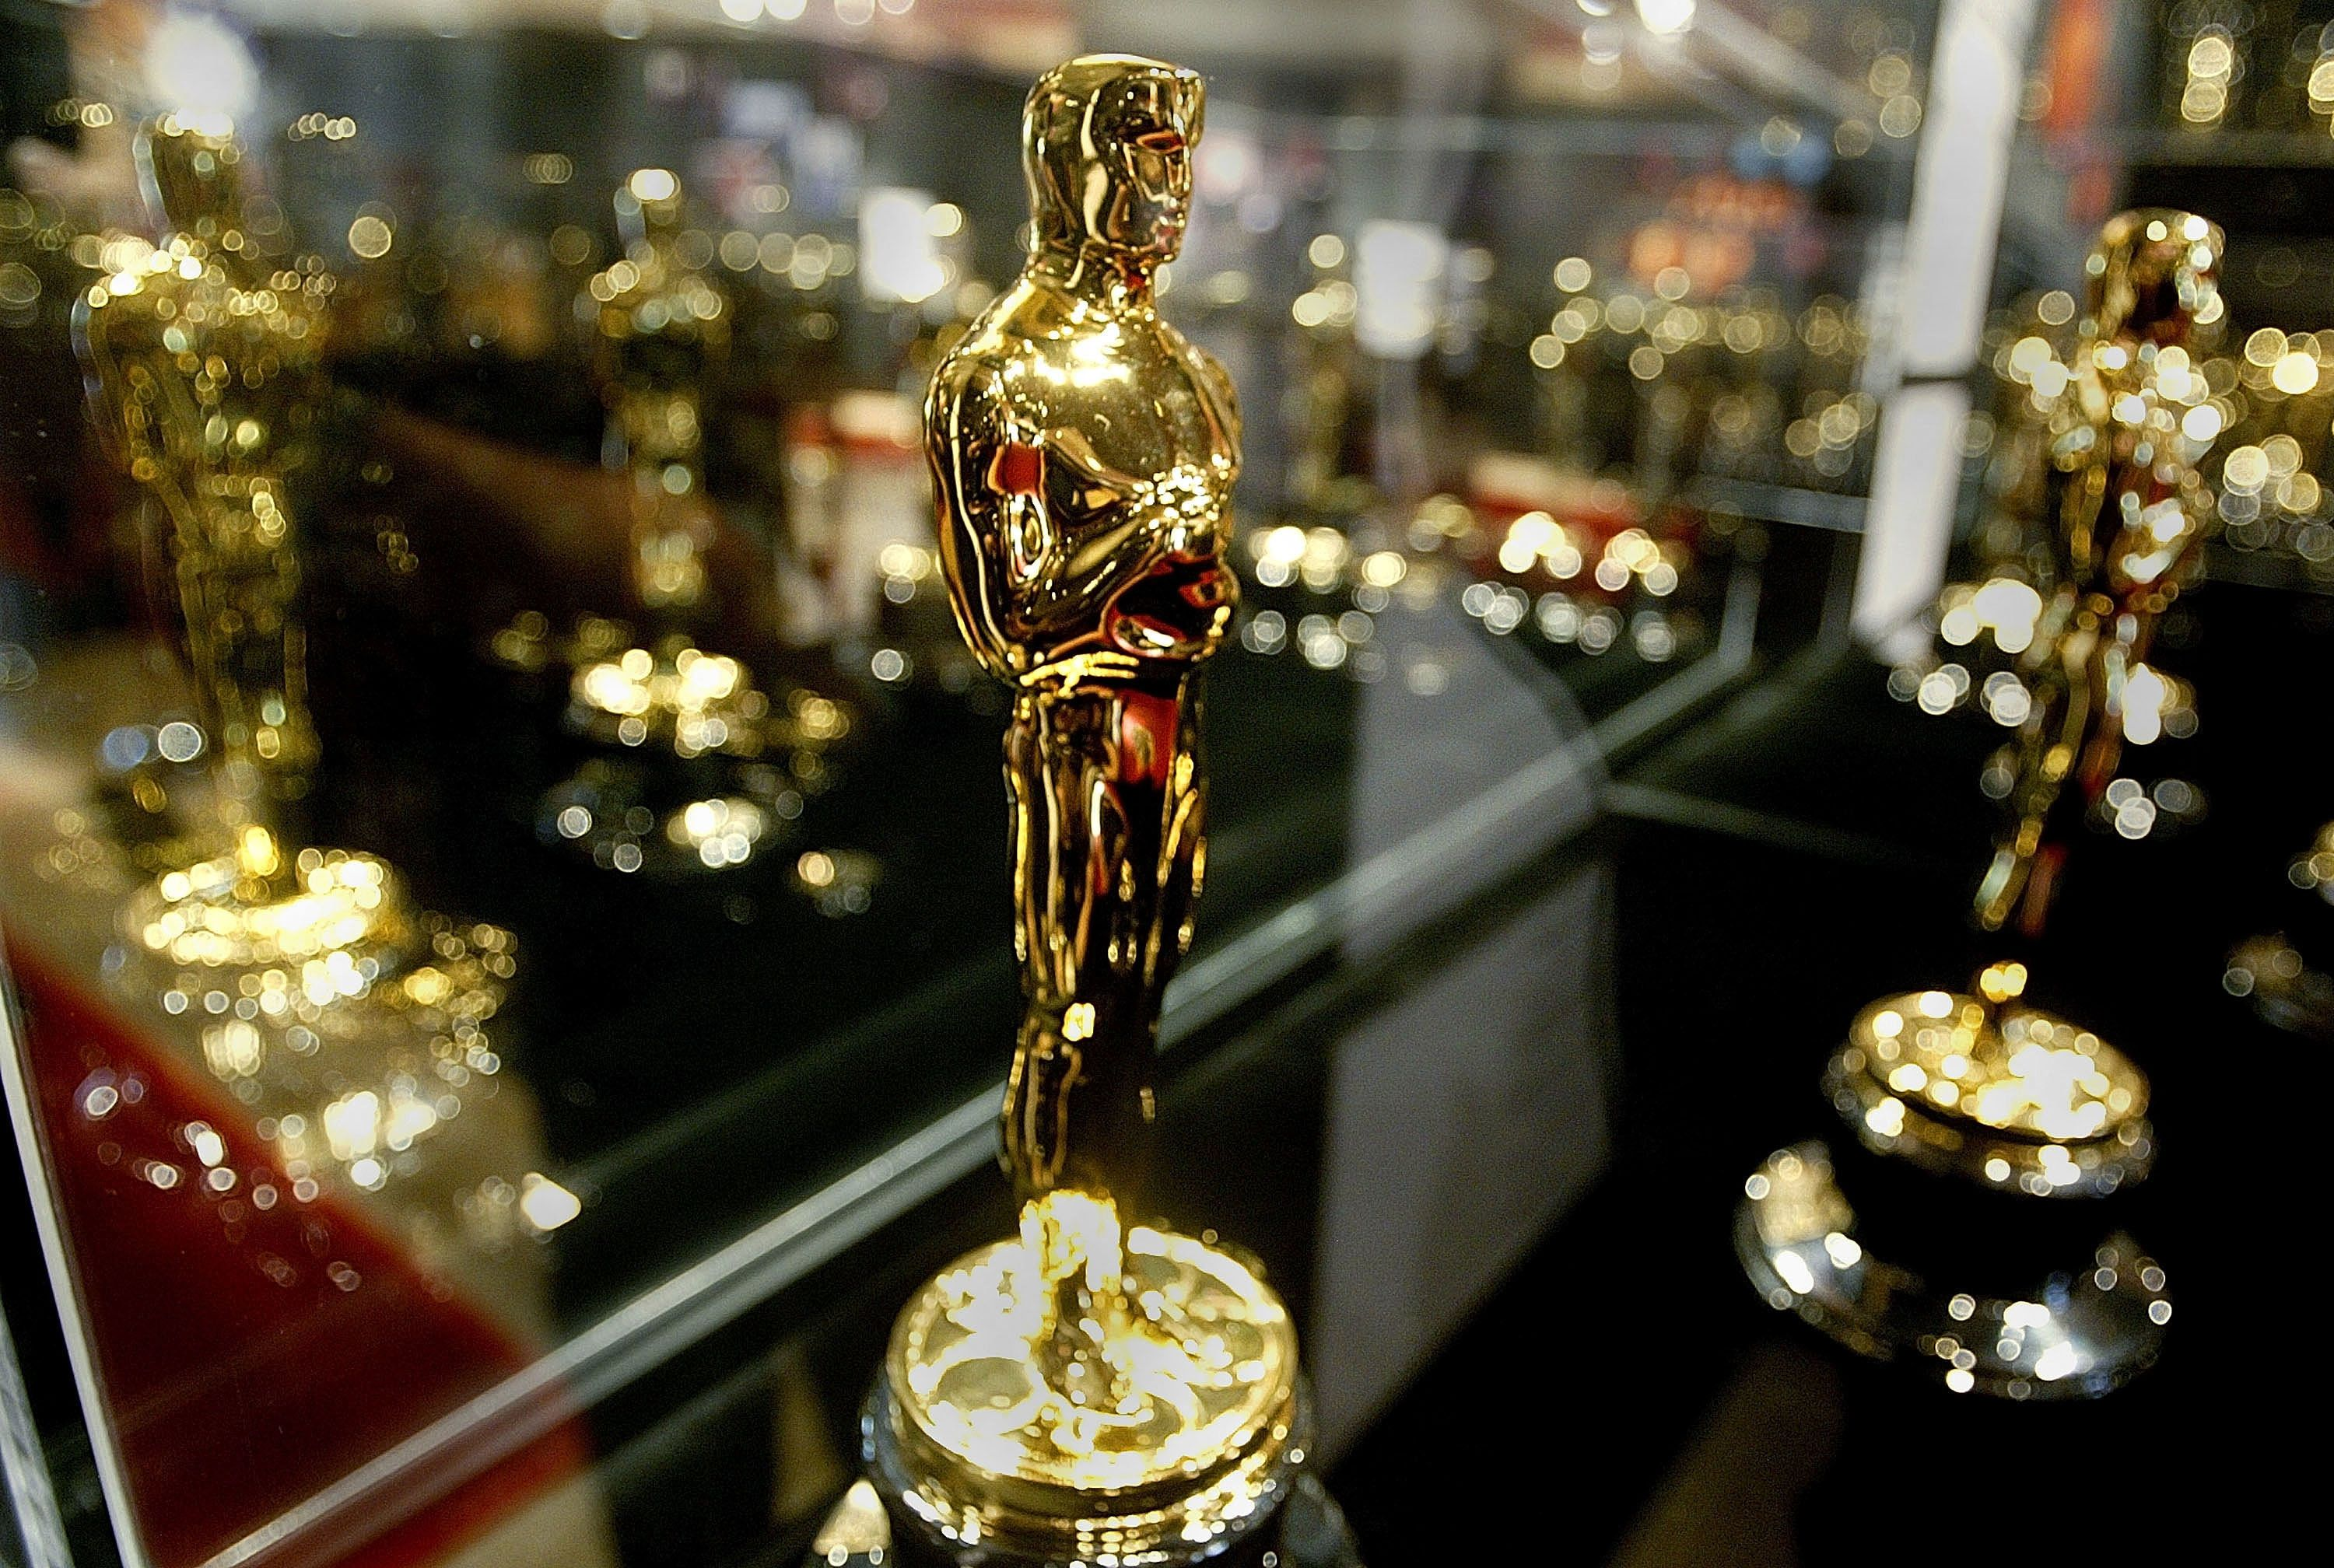 The 90th Academy Awards air March